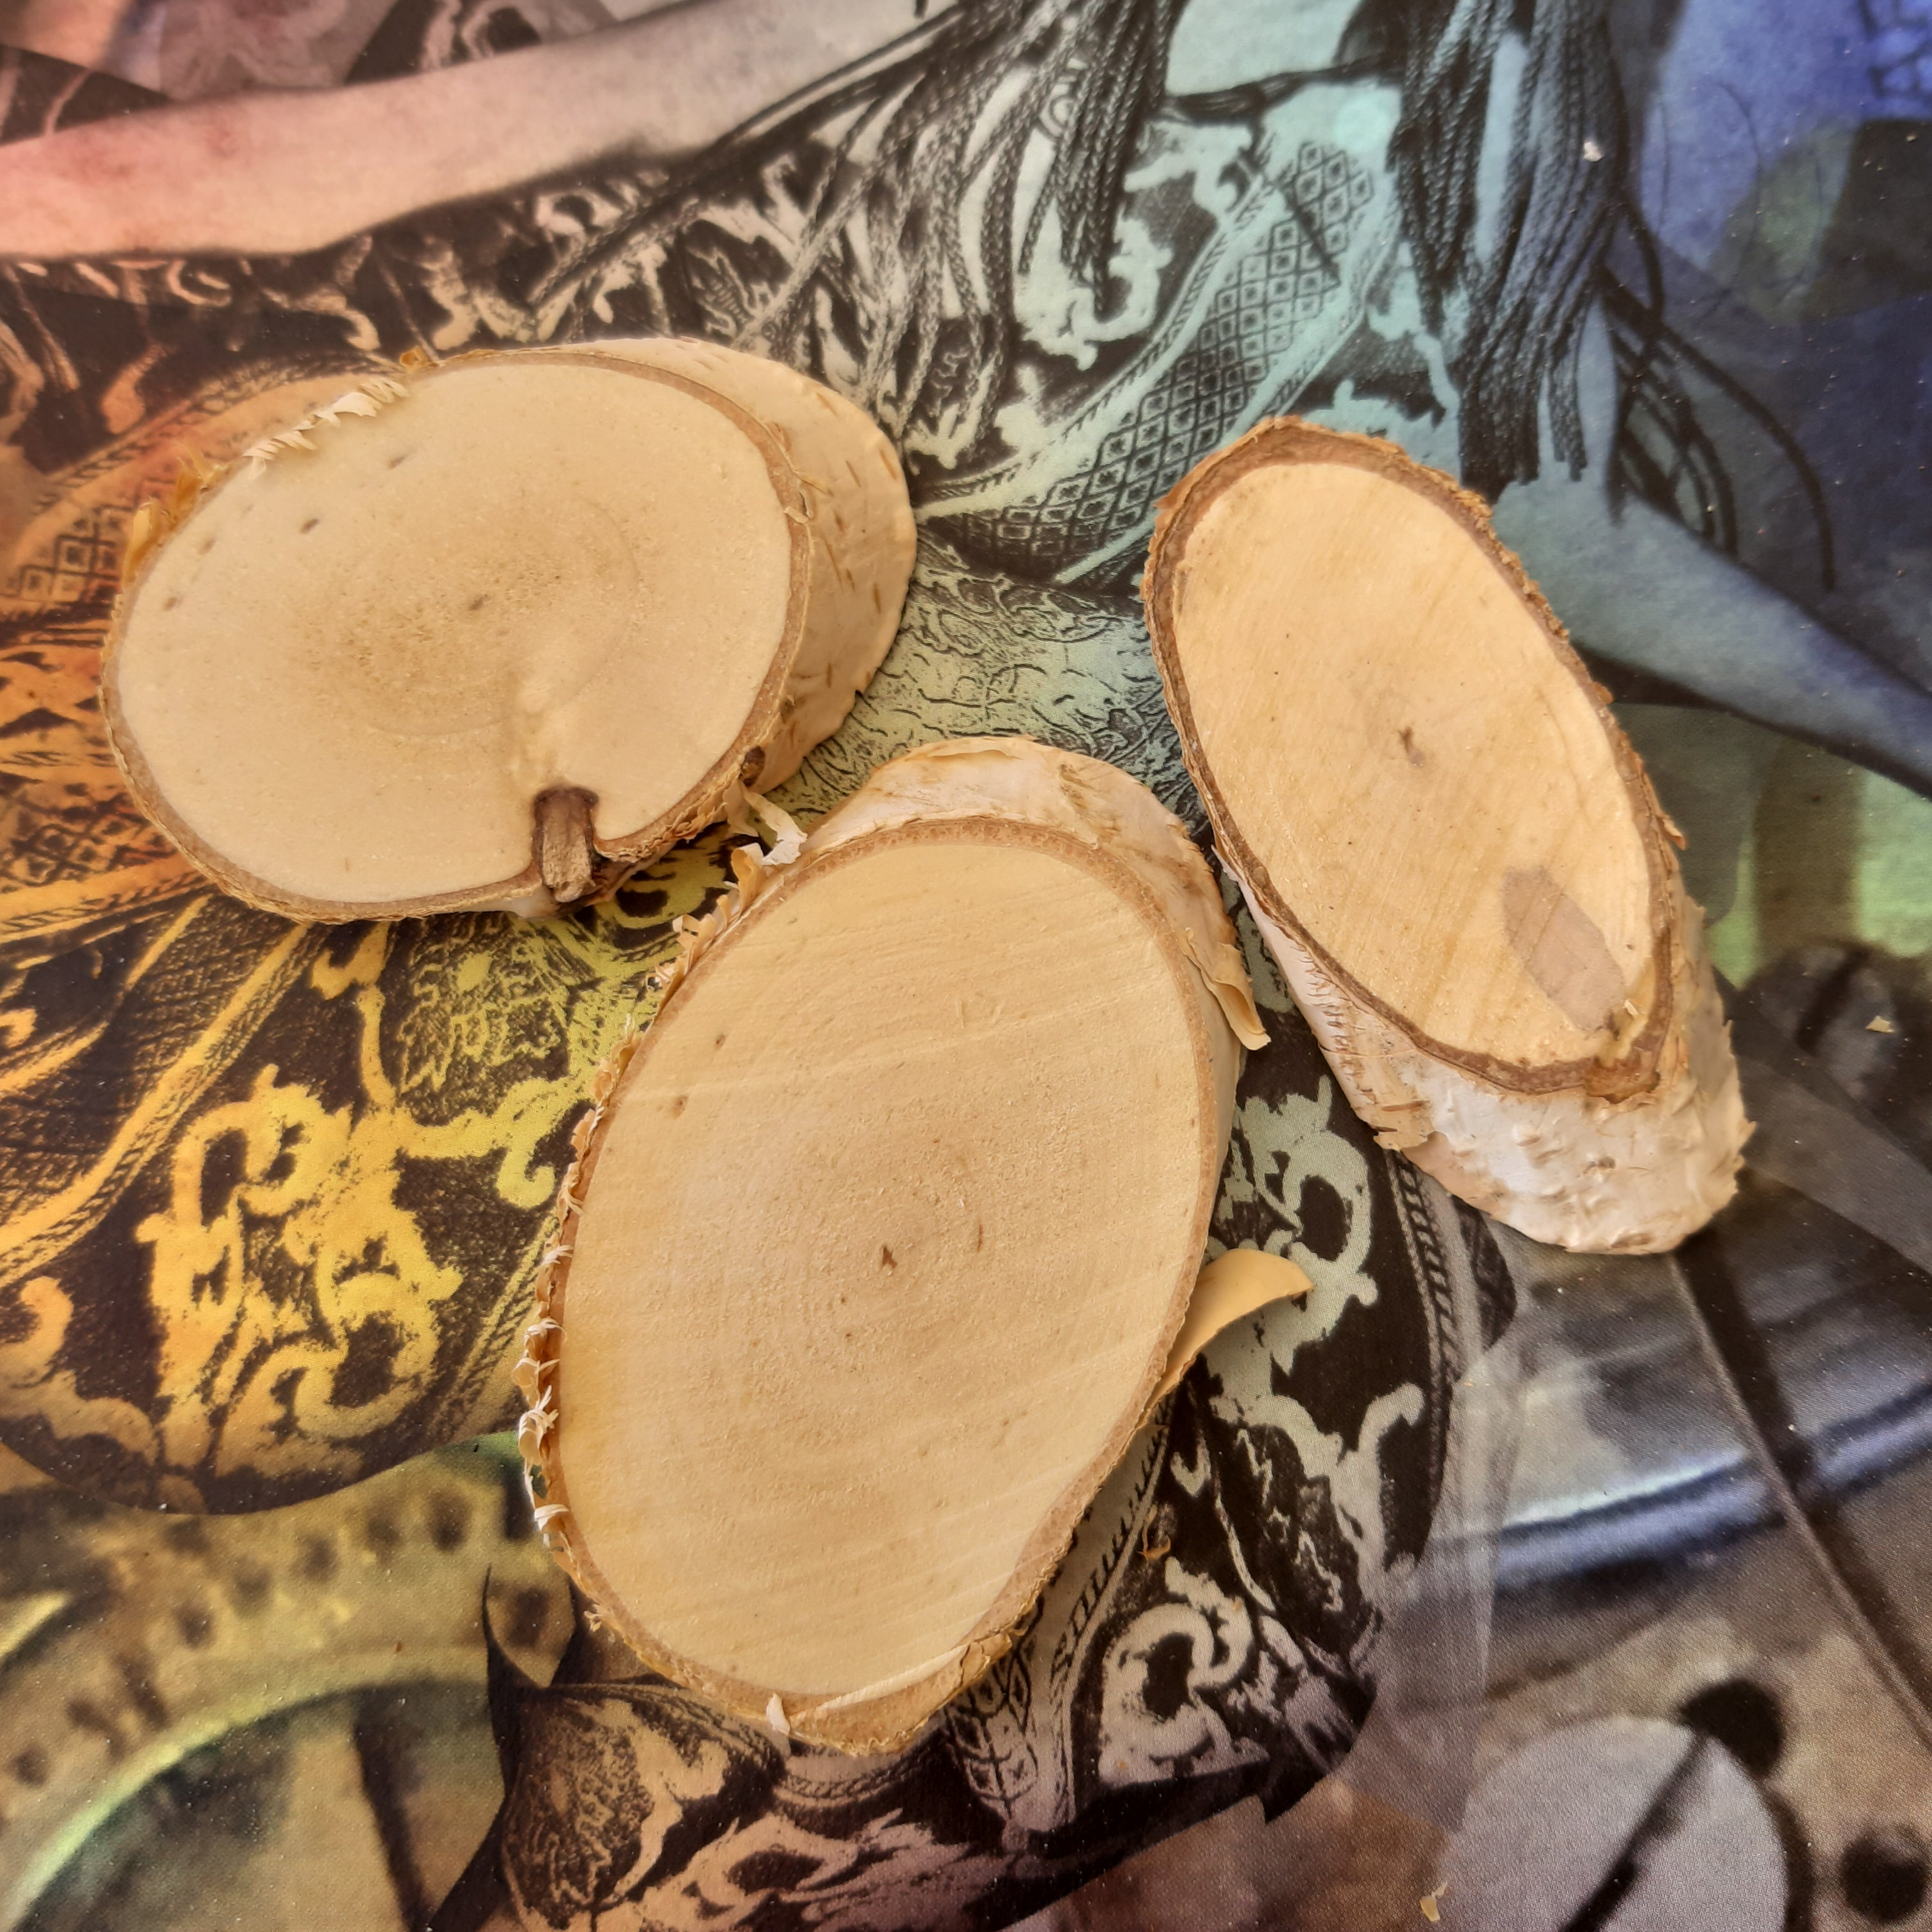 ShokART Set of 3 Natural Wood Slices, Craft Shapes & Bases by The Craft House